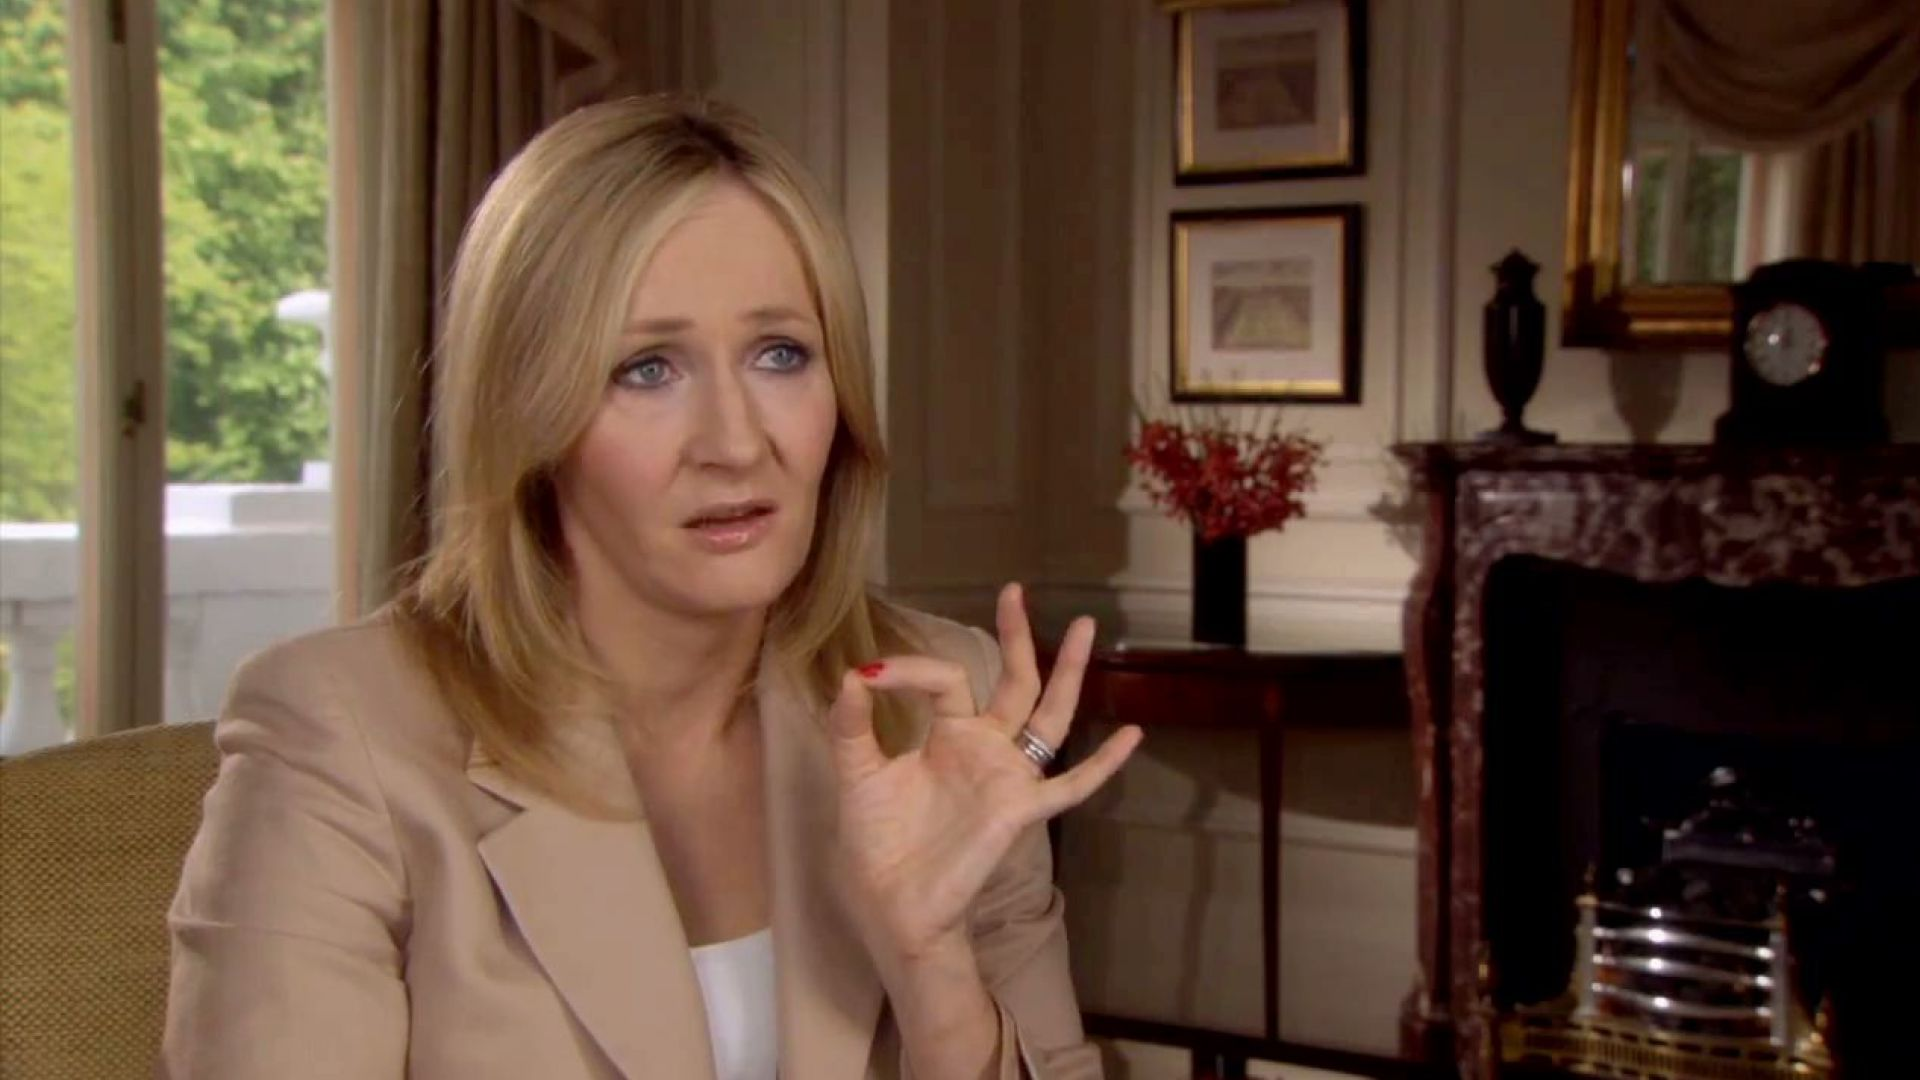 J.K. Rowling on her proudest moment while making Harry Potter